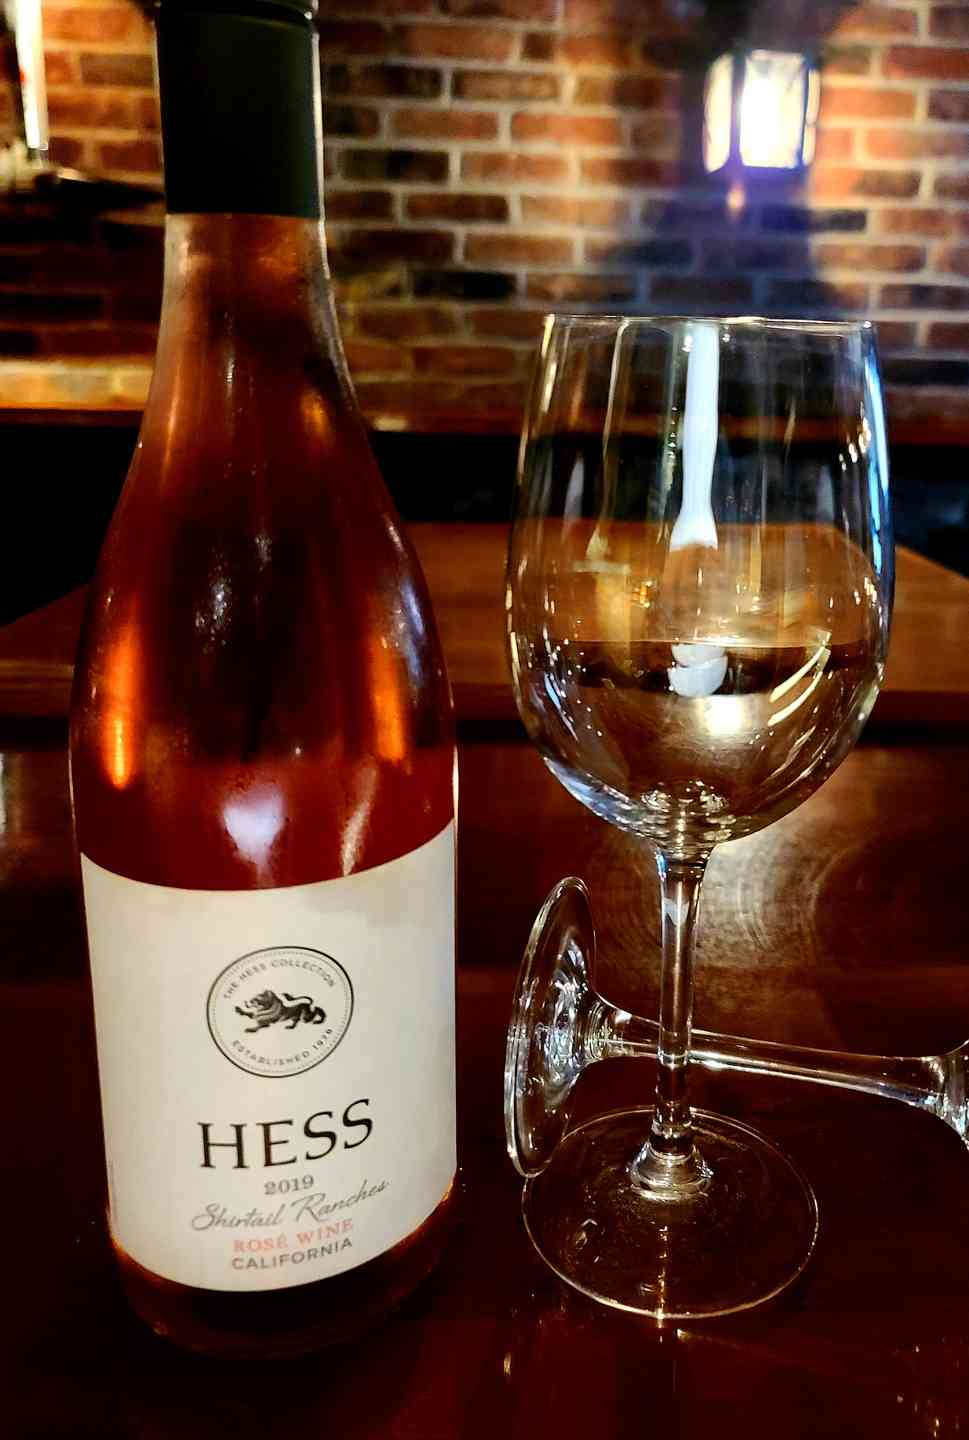 Rosé, Hess Shirttail